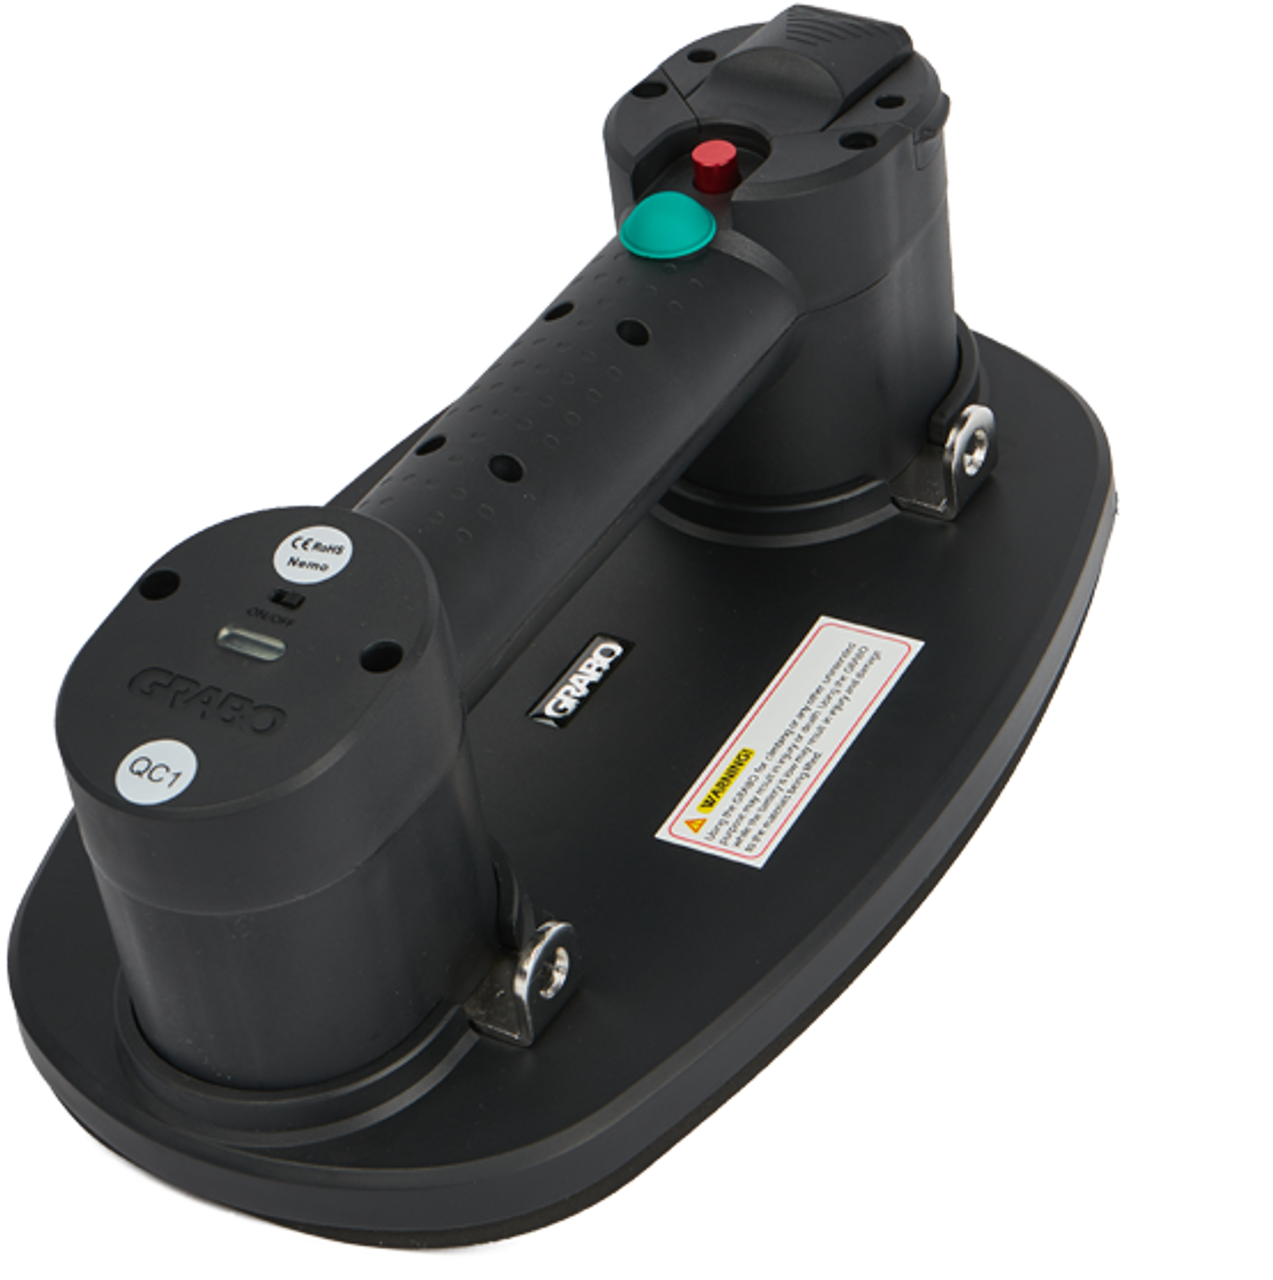 GRABO Cordless Suction Cup